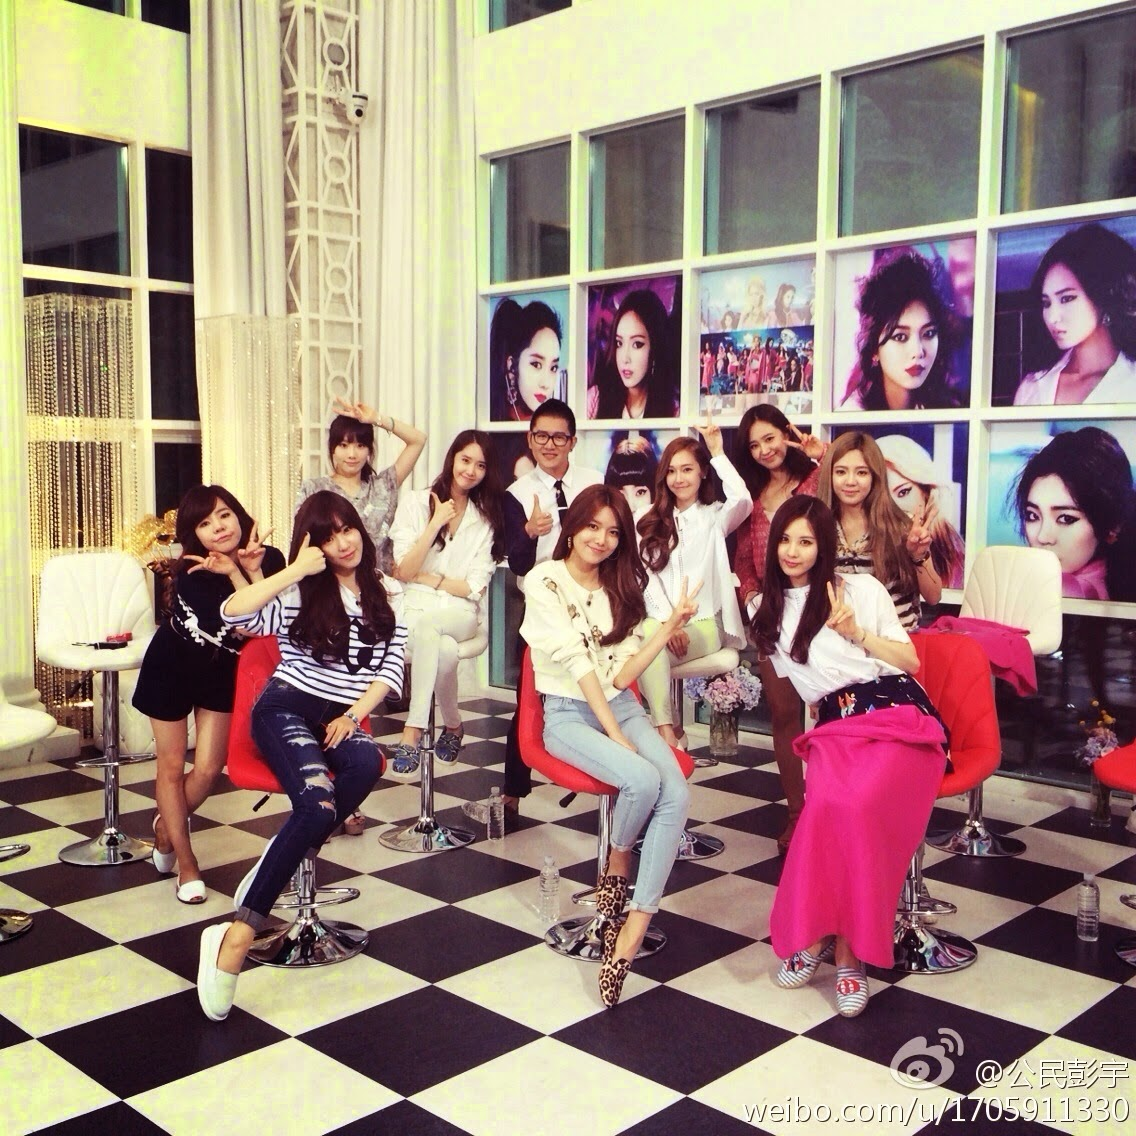 snsd strongest group filming